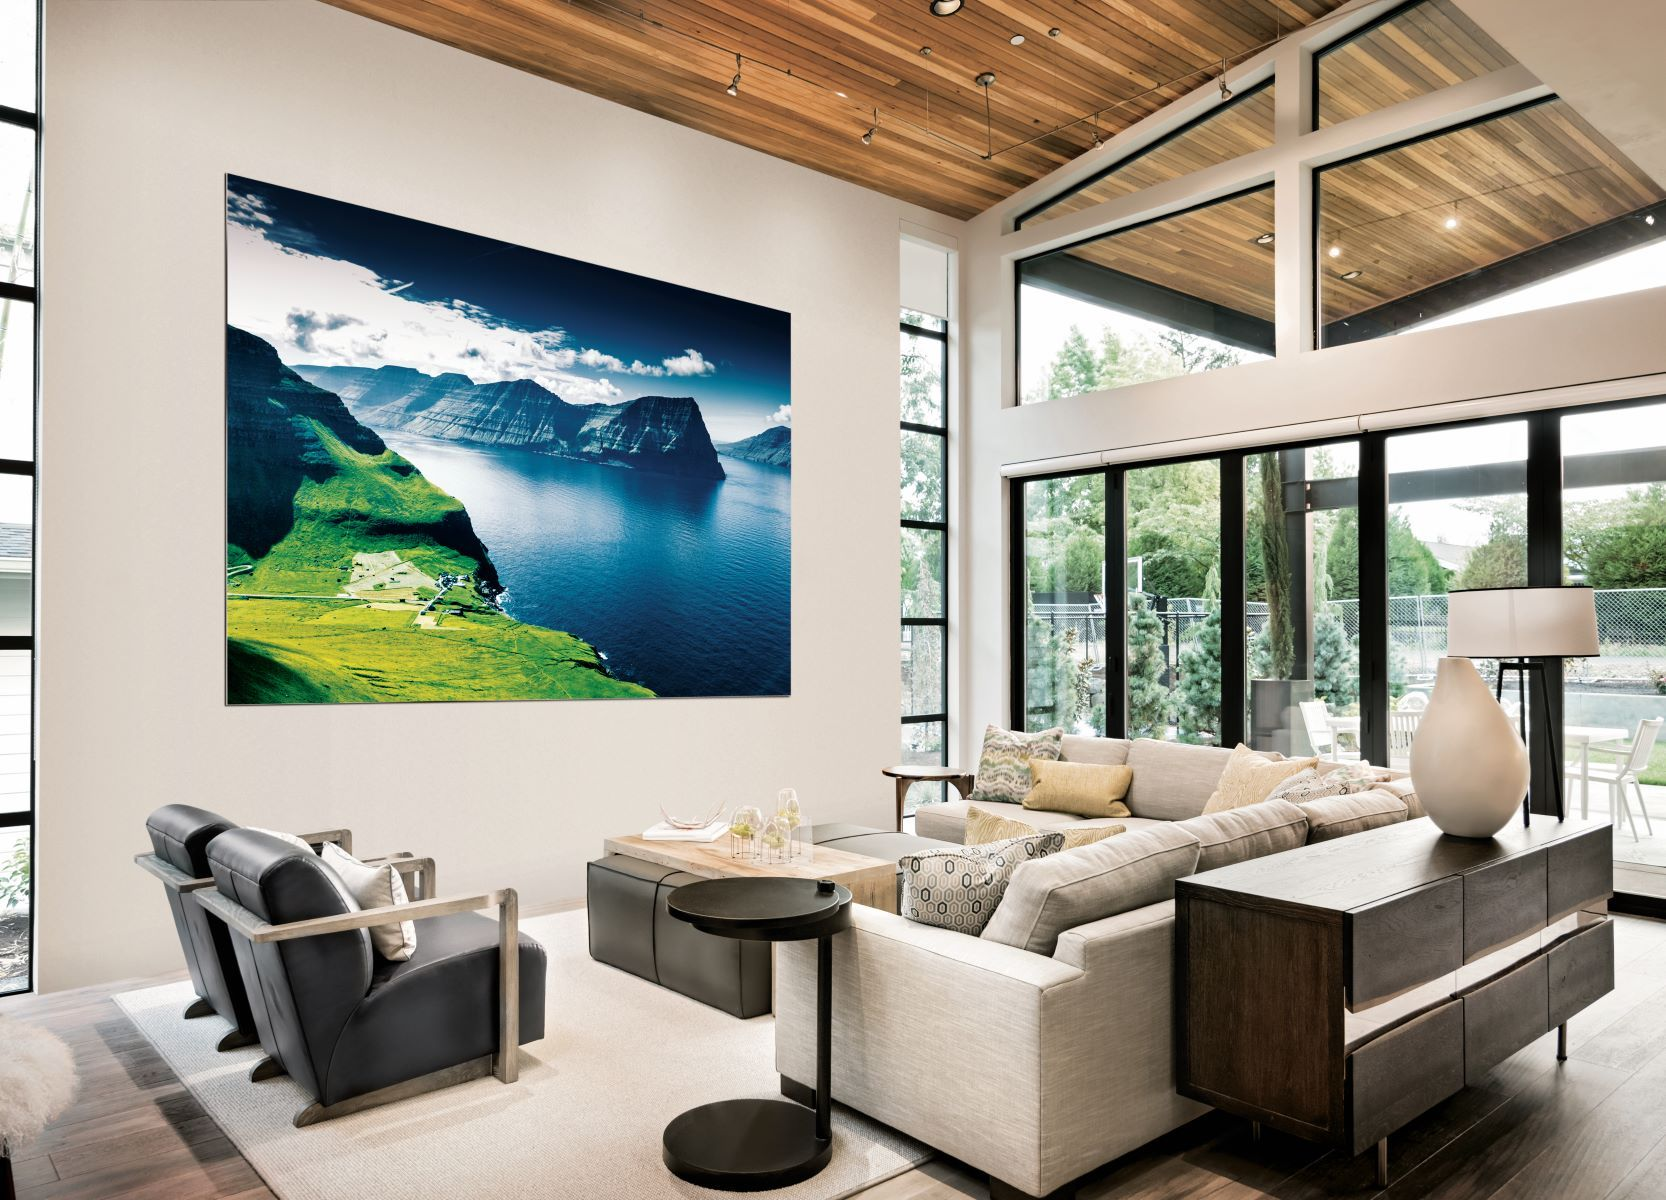 How To Design The Ultimate Home Cinema Experience